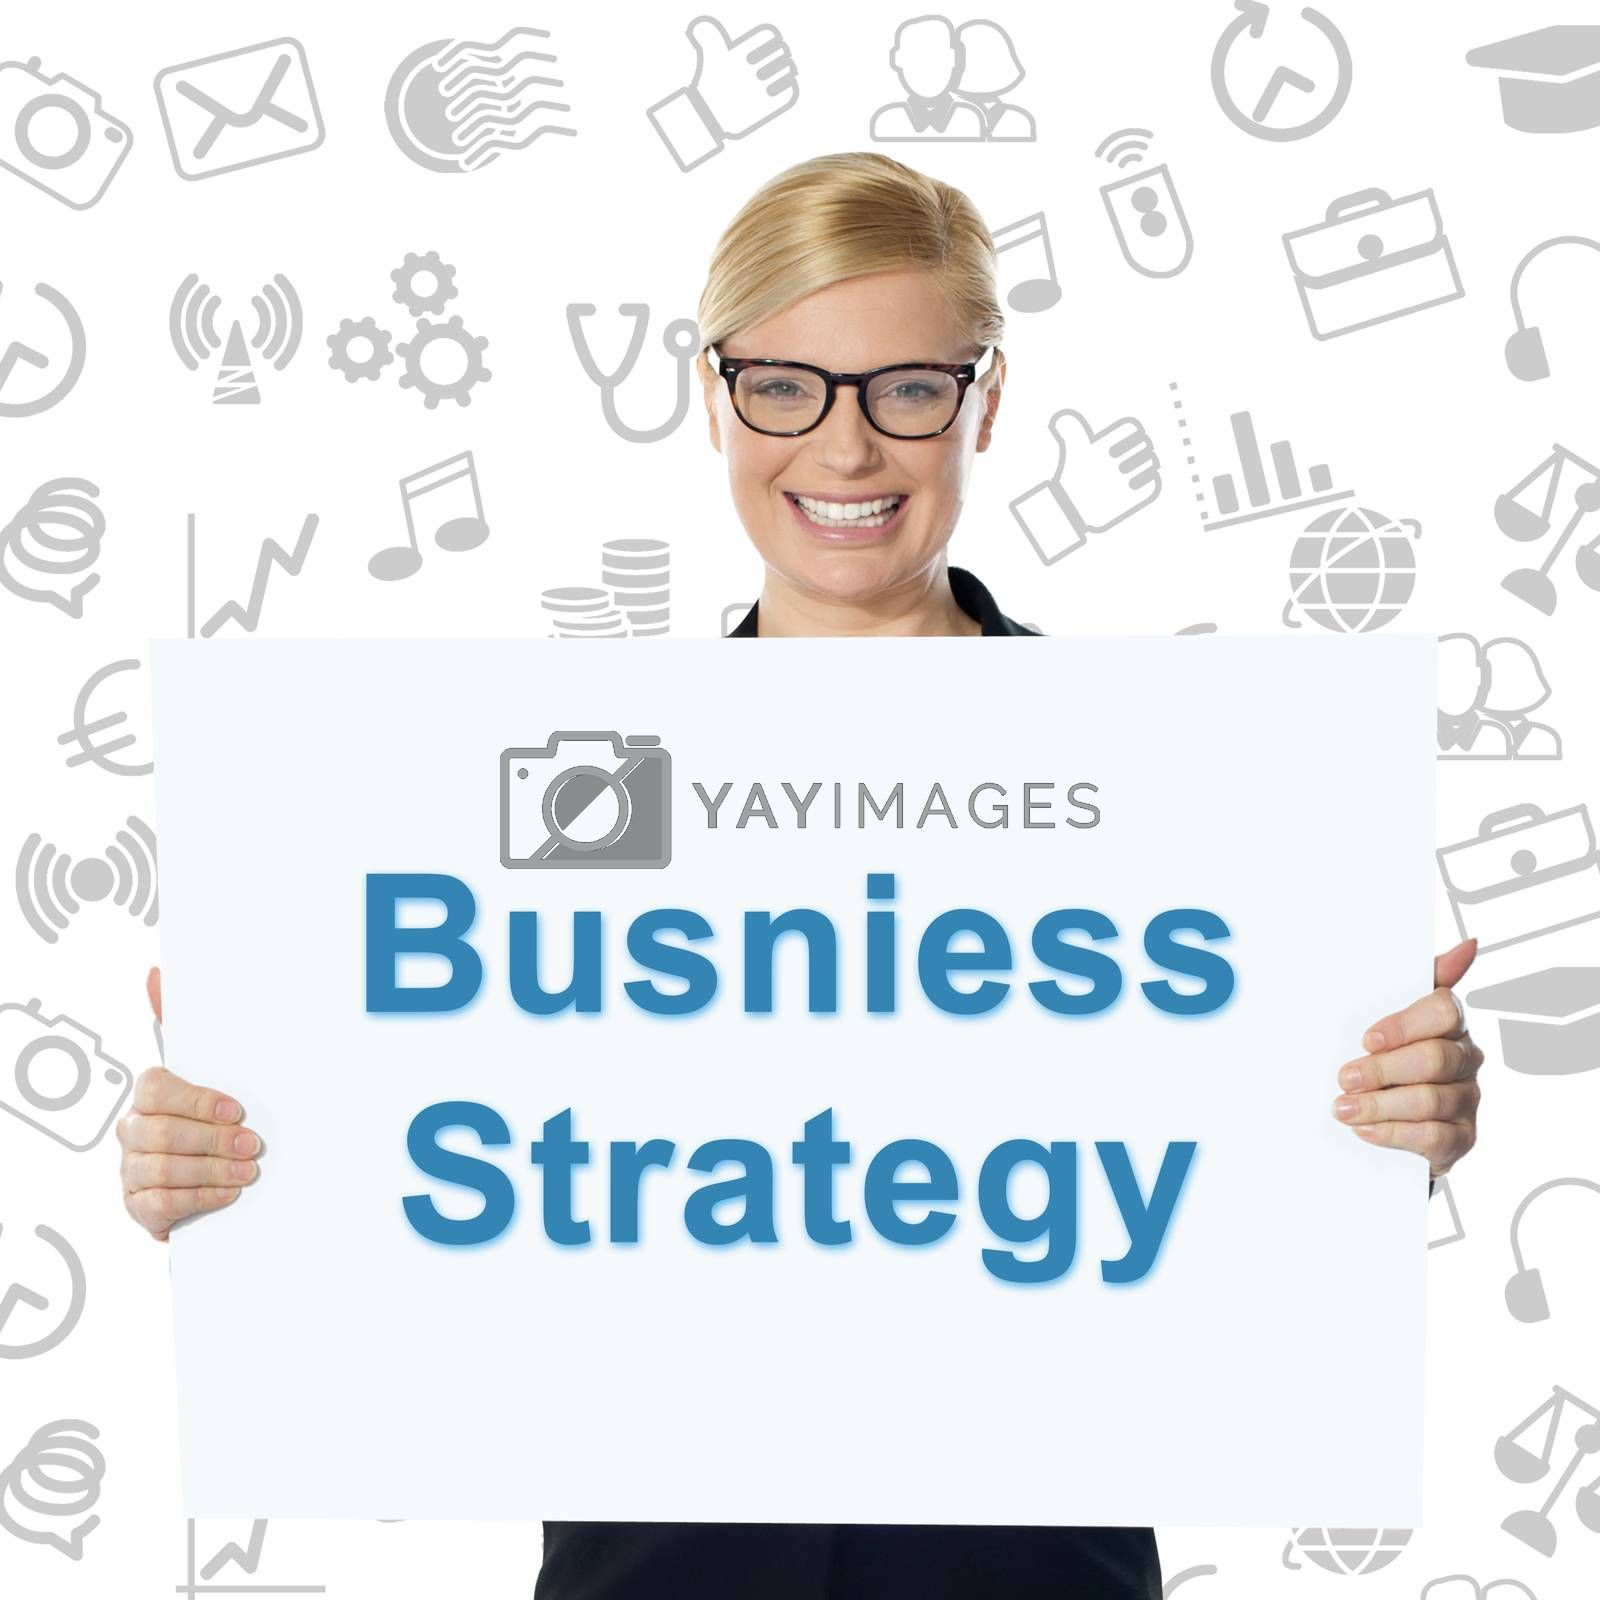 Smiling businesswoman holding business strategy banner